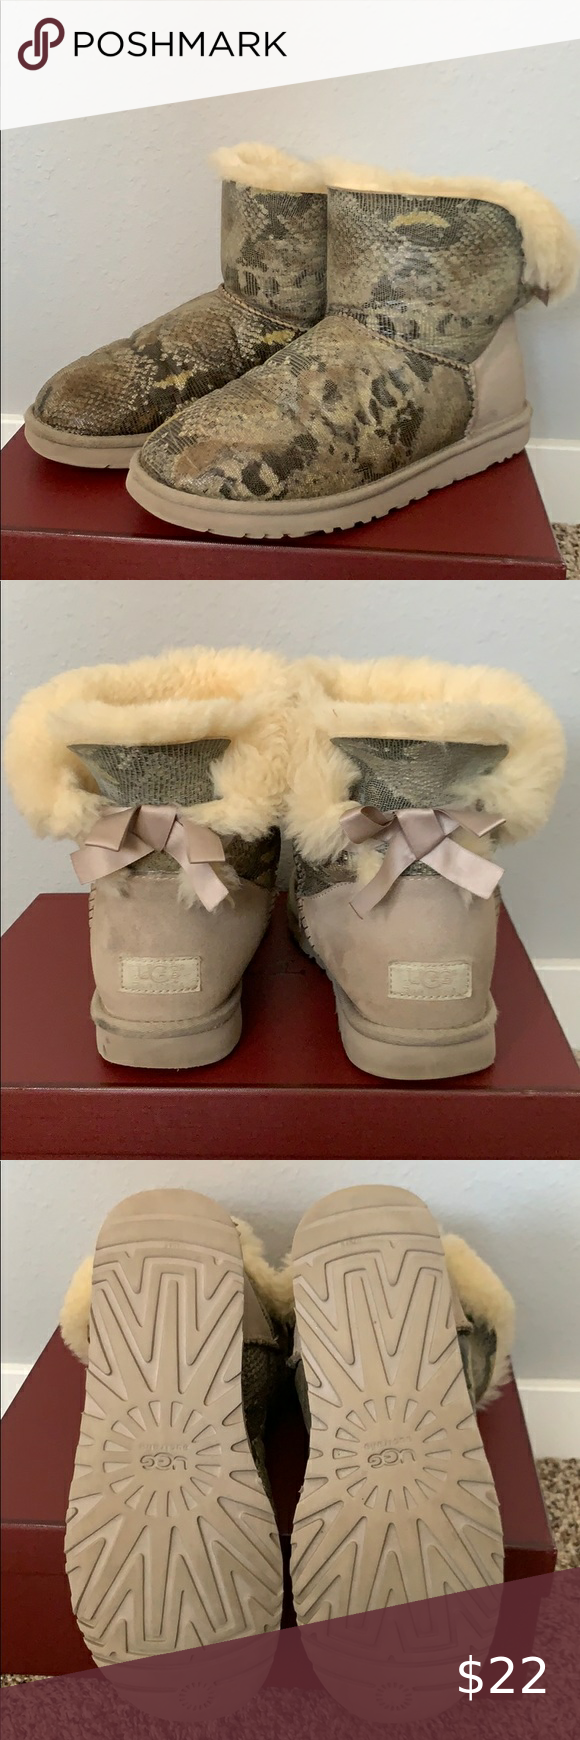 Are Uggs Made In Vietnam : vietnam, Boots, Boots,, Uggs,